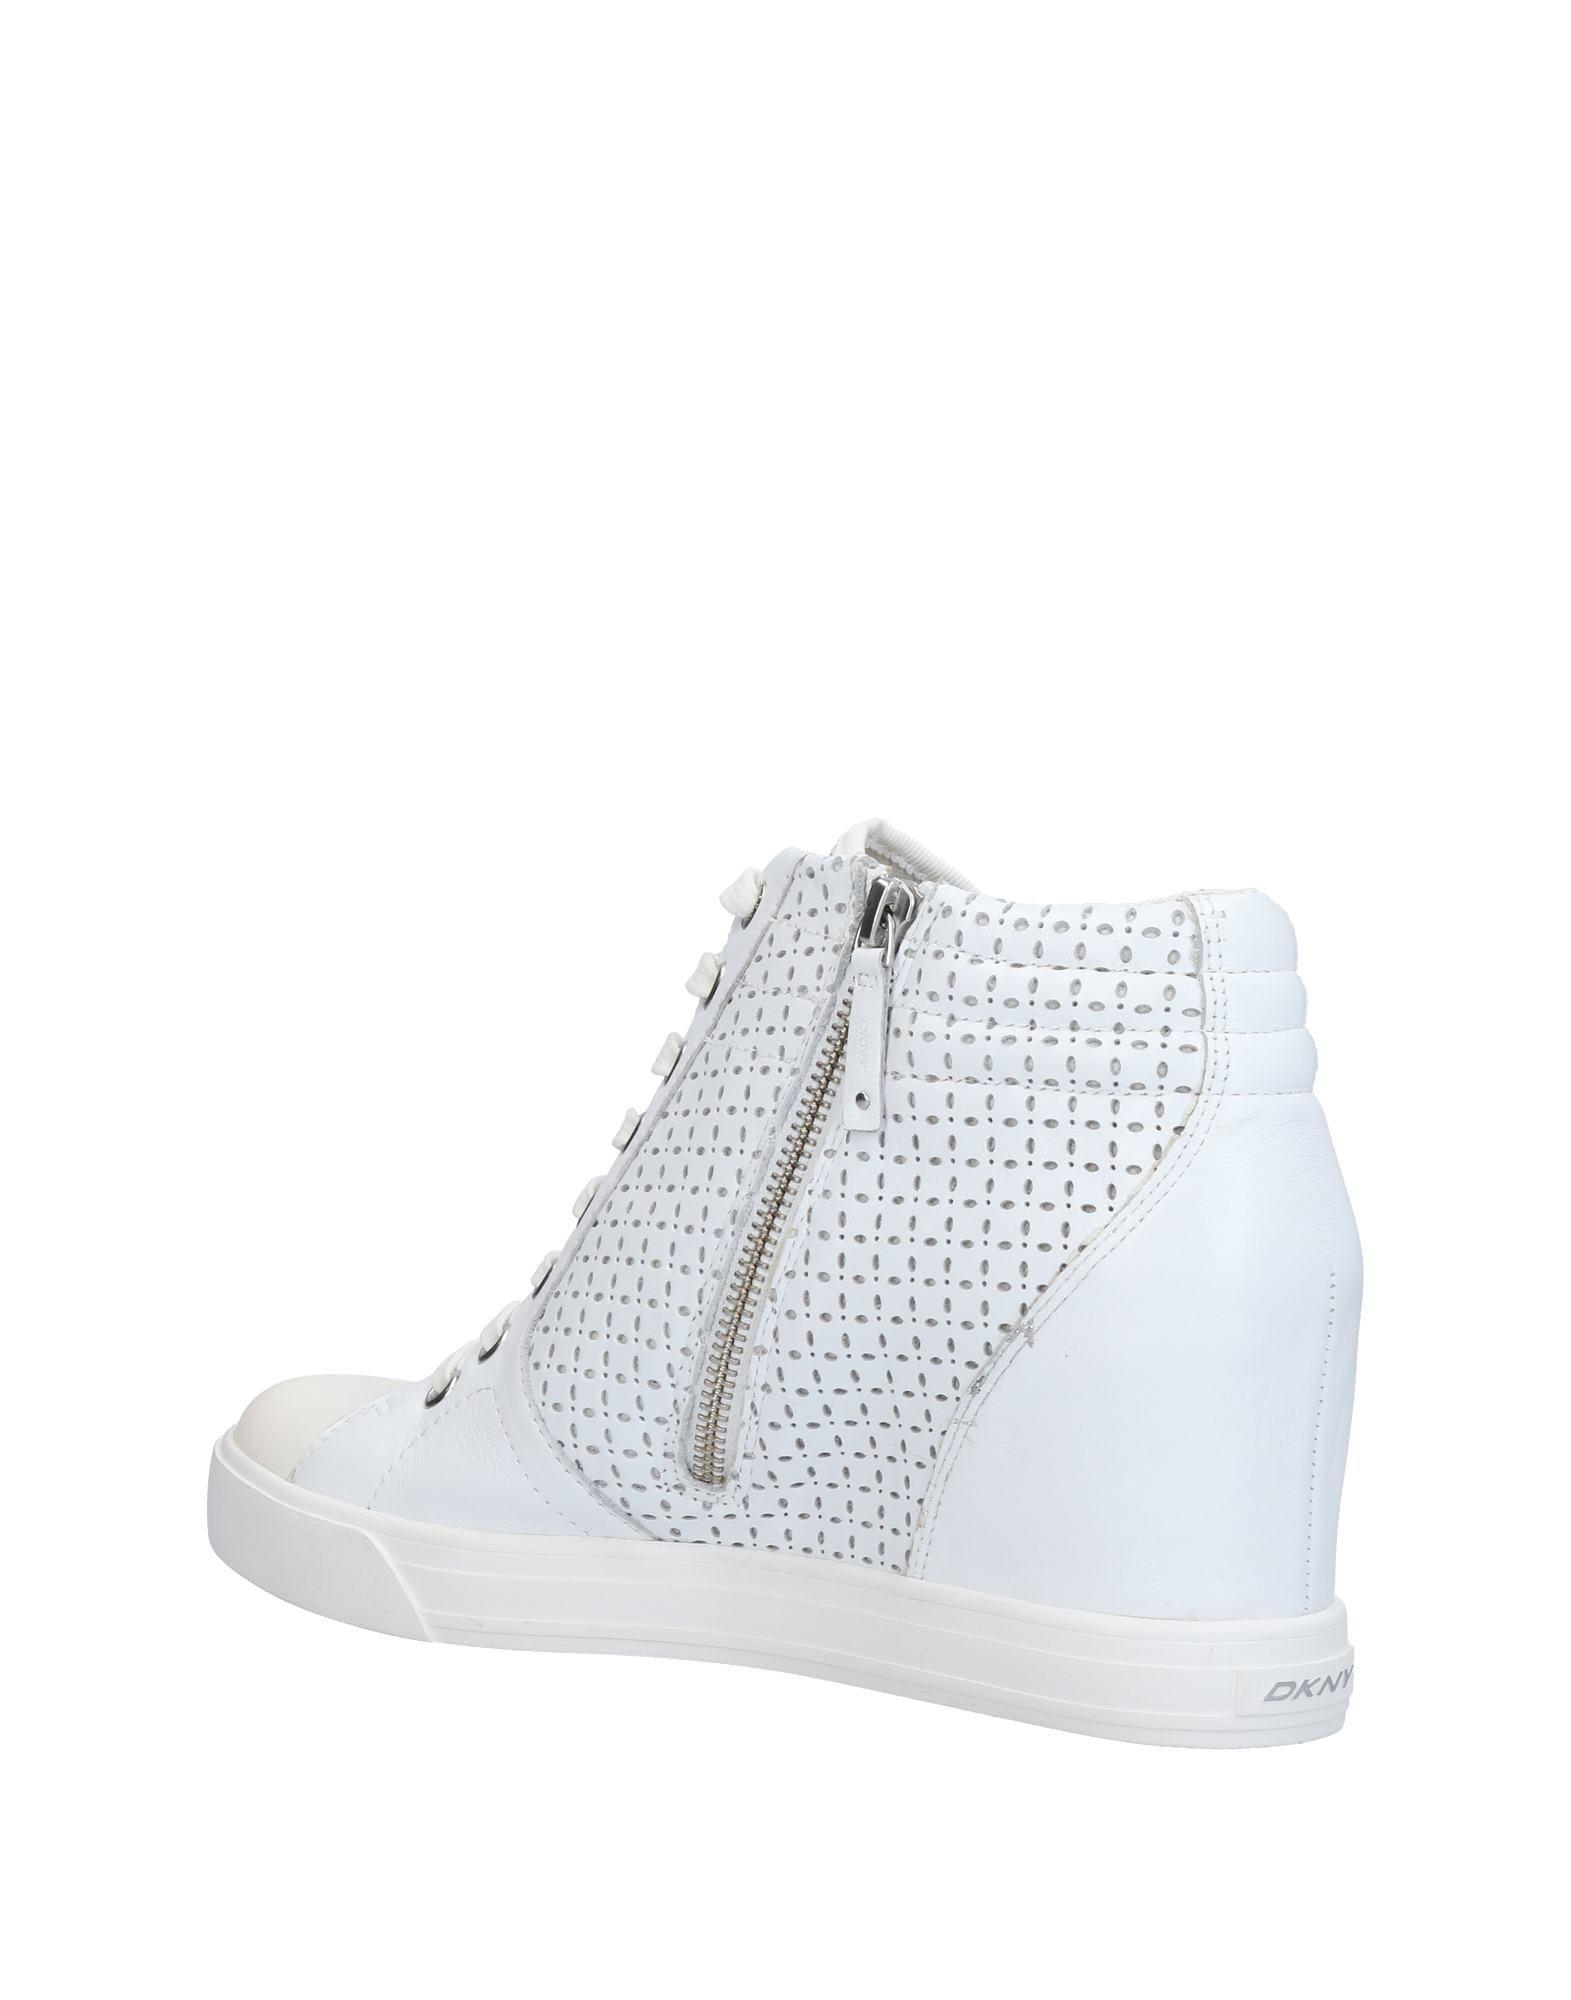 DKNY Rubber High-tops & Sneakers in White